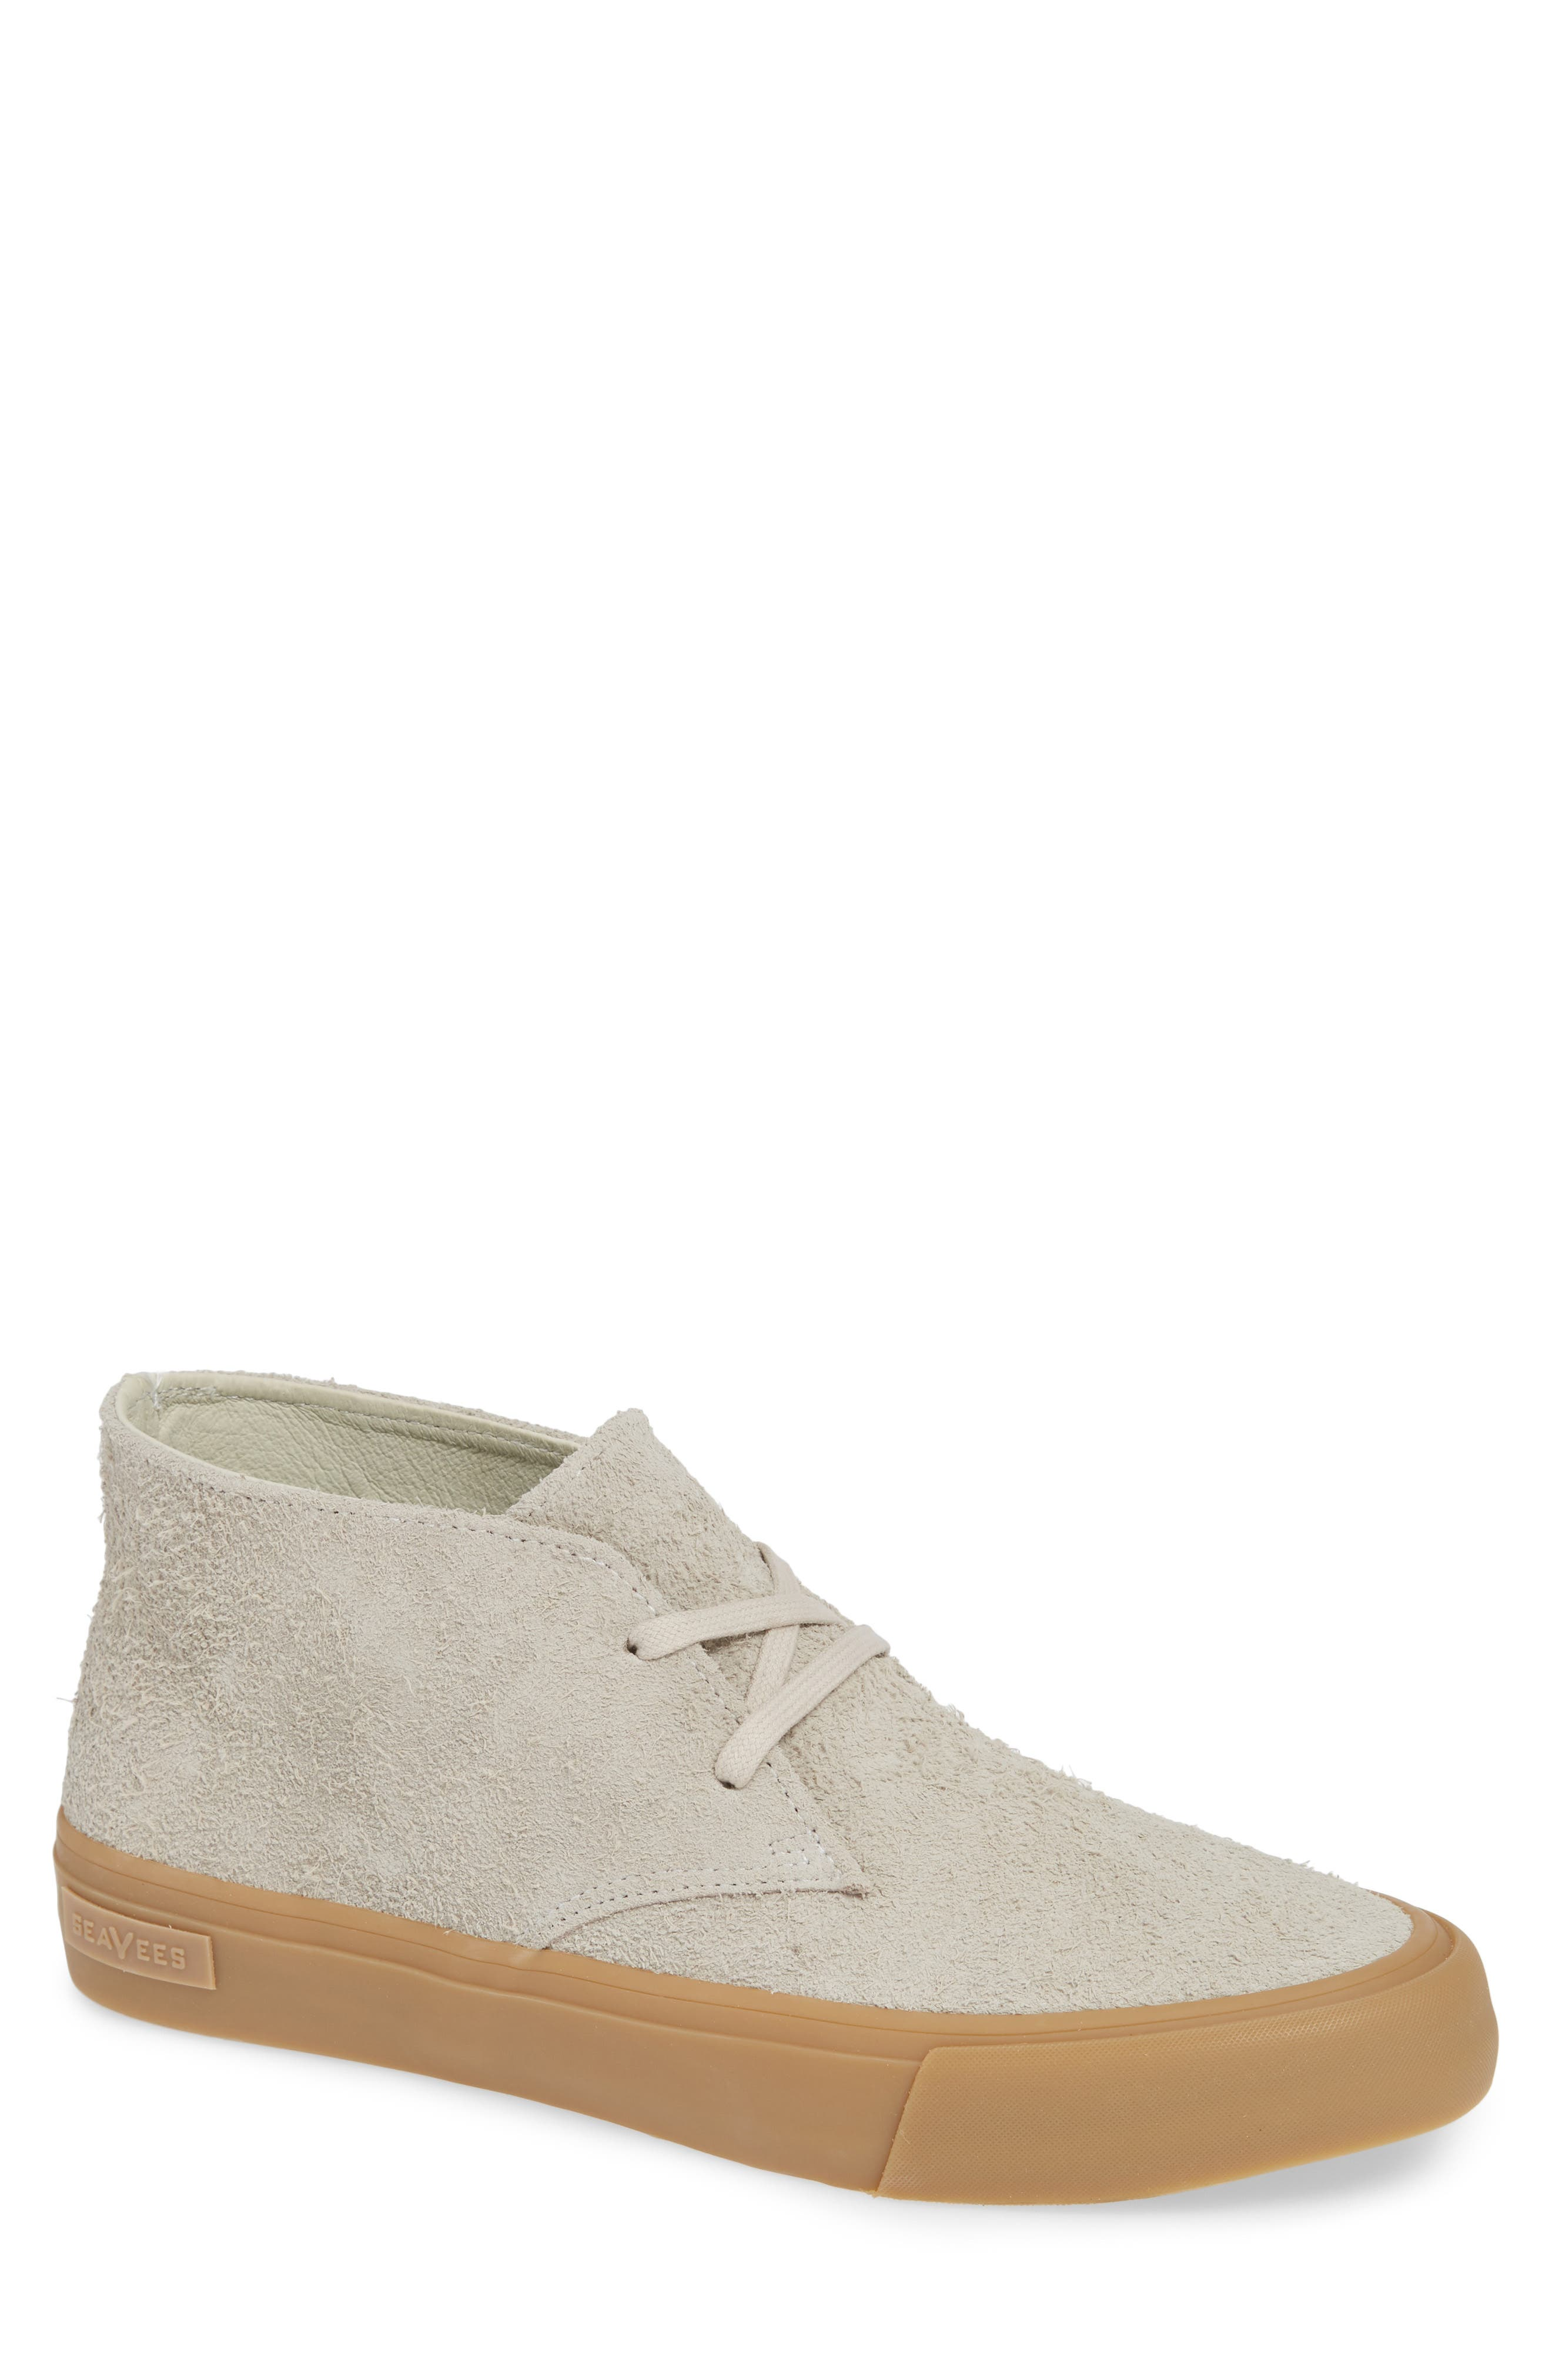 Maslon Chukka Boot,                         Main,                         color, 110